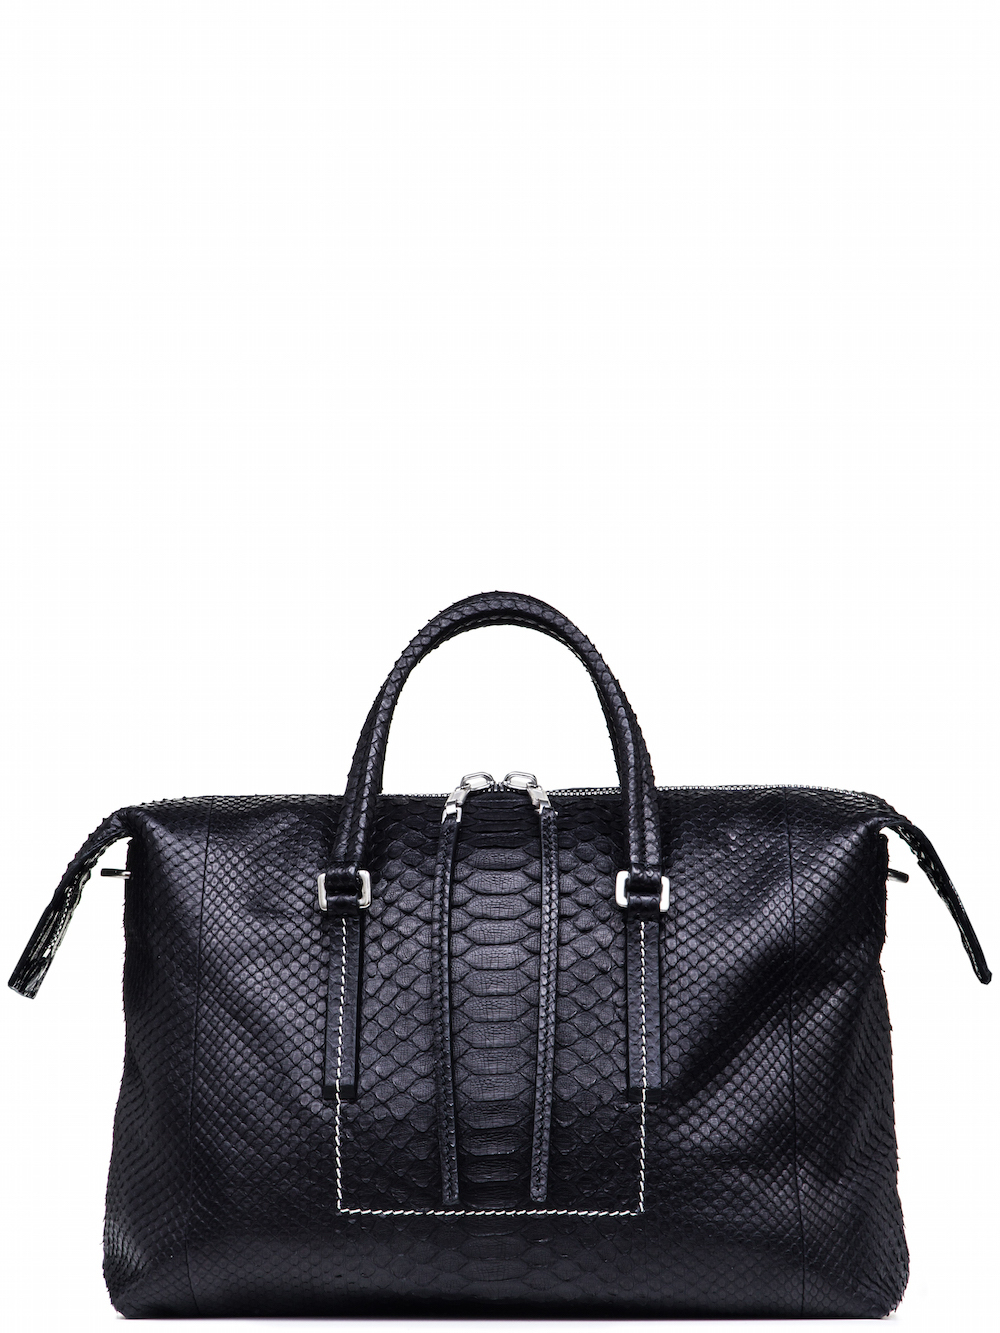 RICK OWENS CITY BAG IN BLACK GIANT PYTHON LEATHER